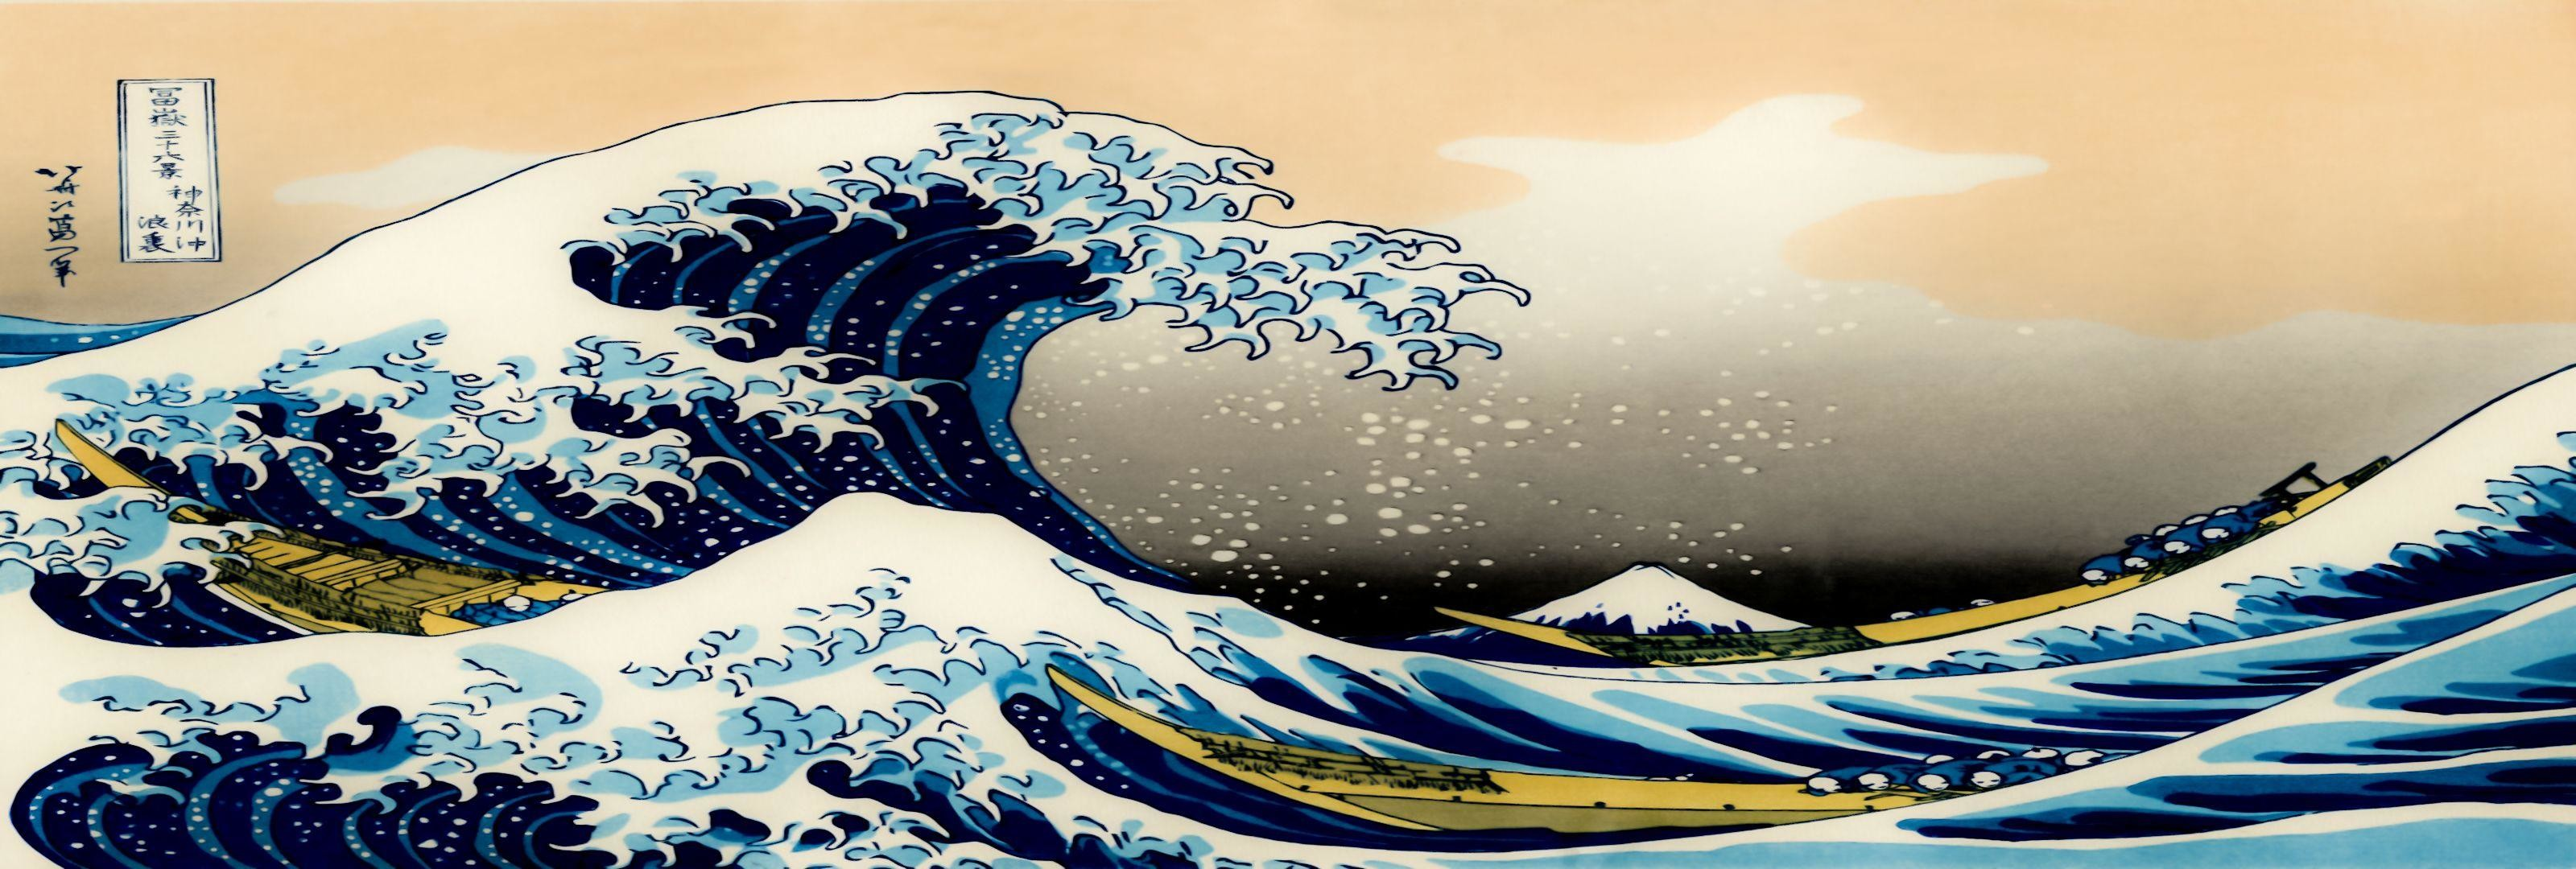 Great Wave Off Kanagawa Wallpaper – WallpaperSafari